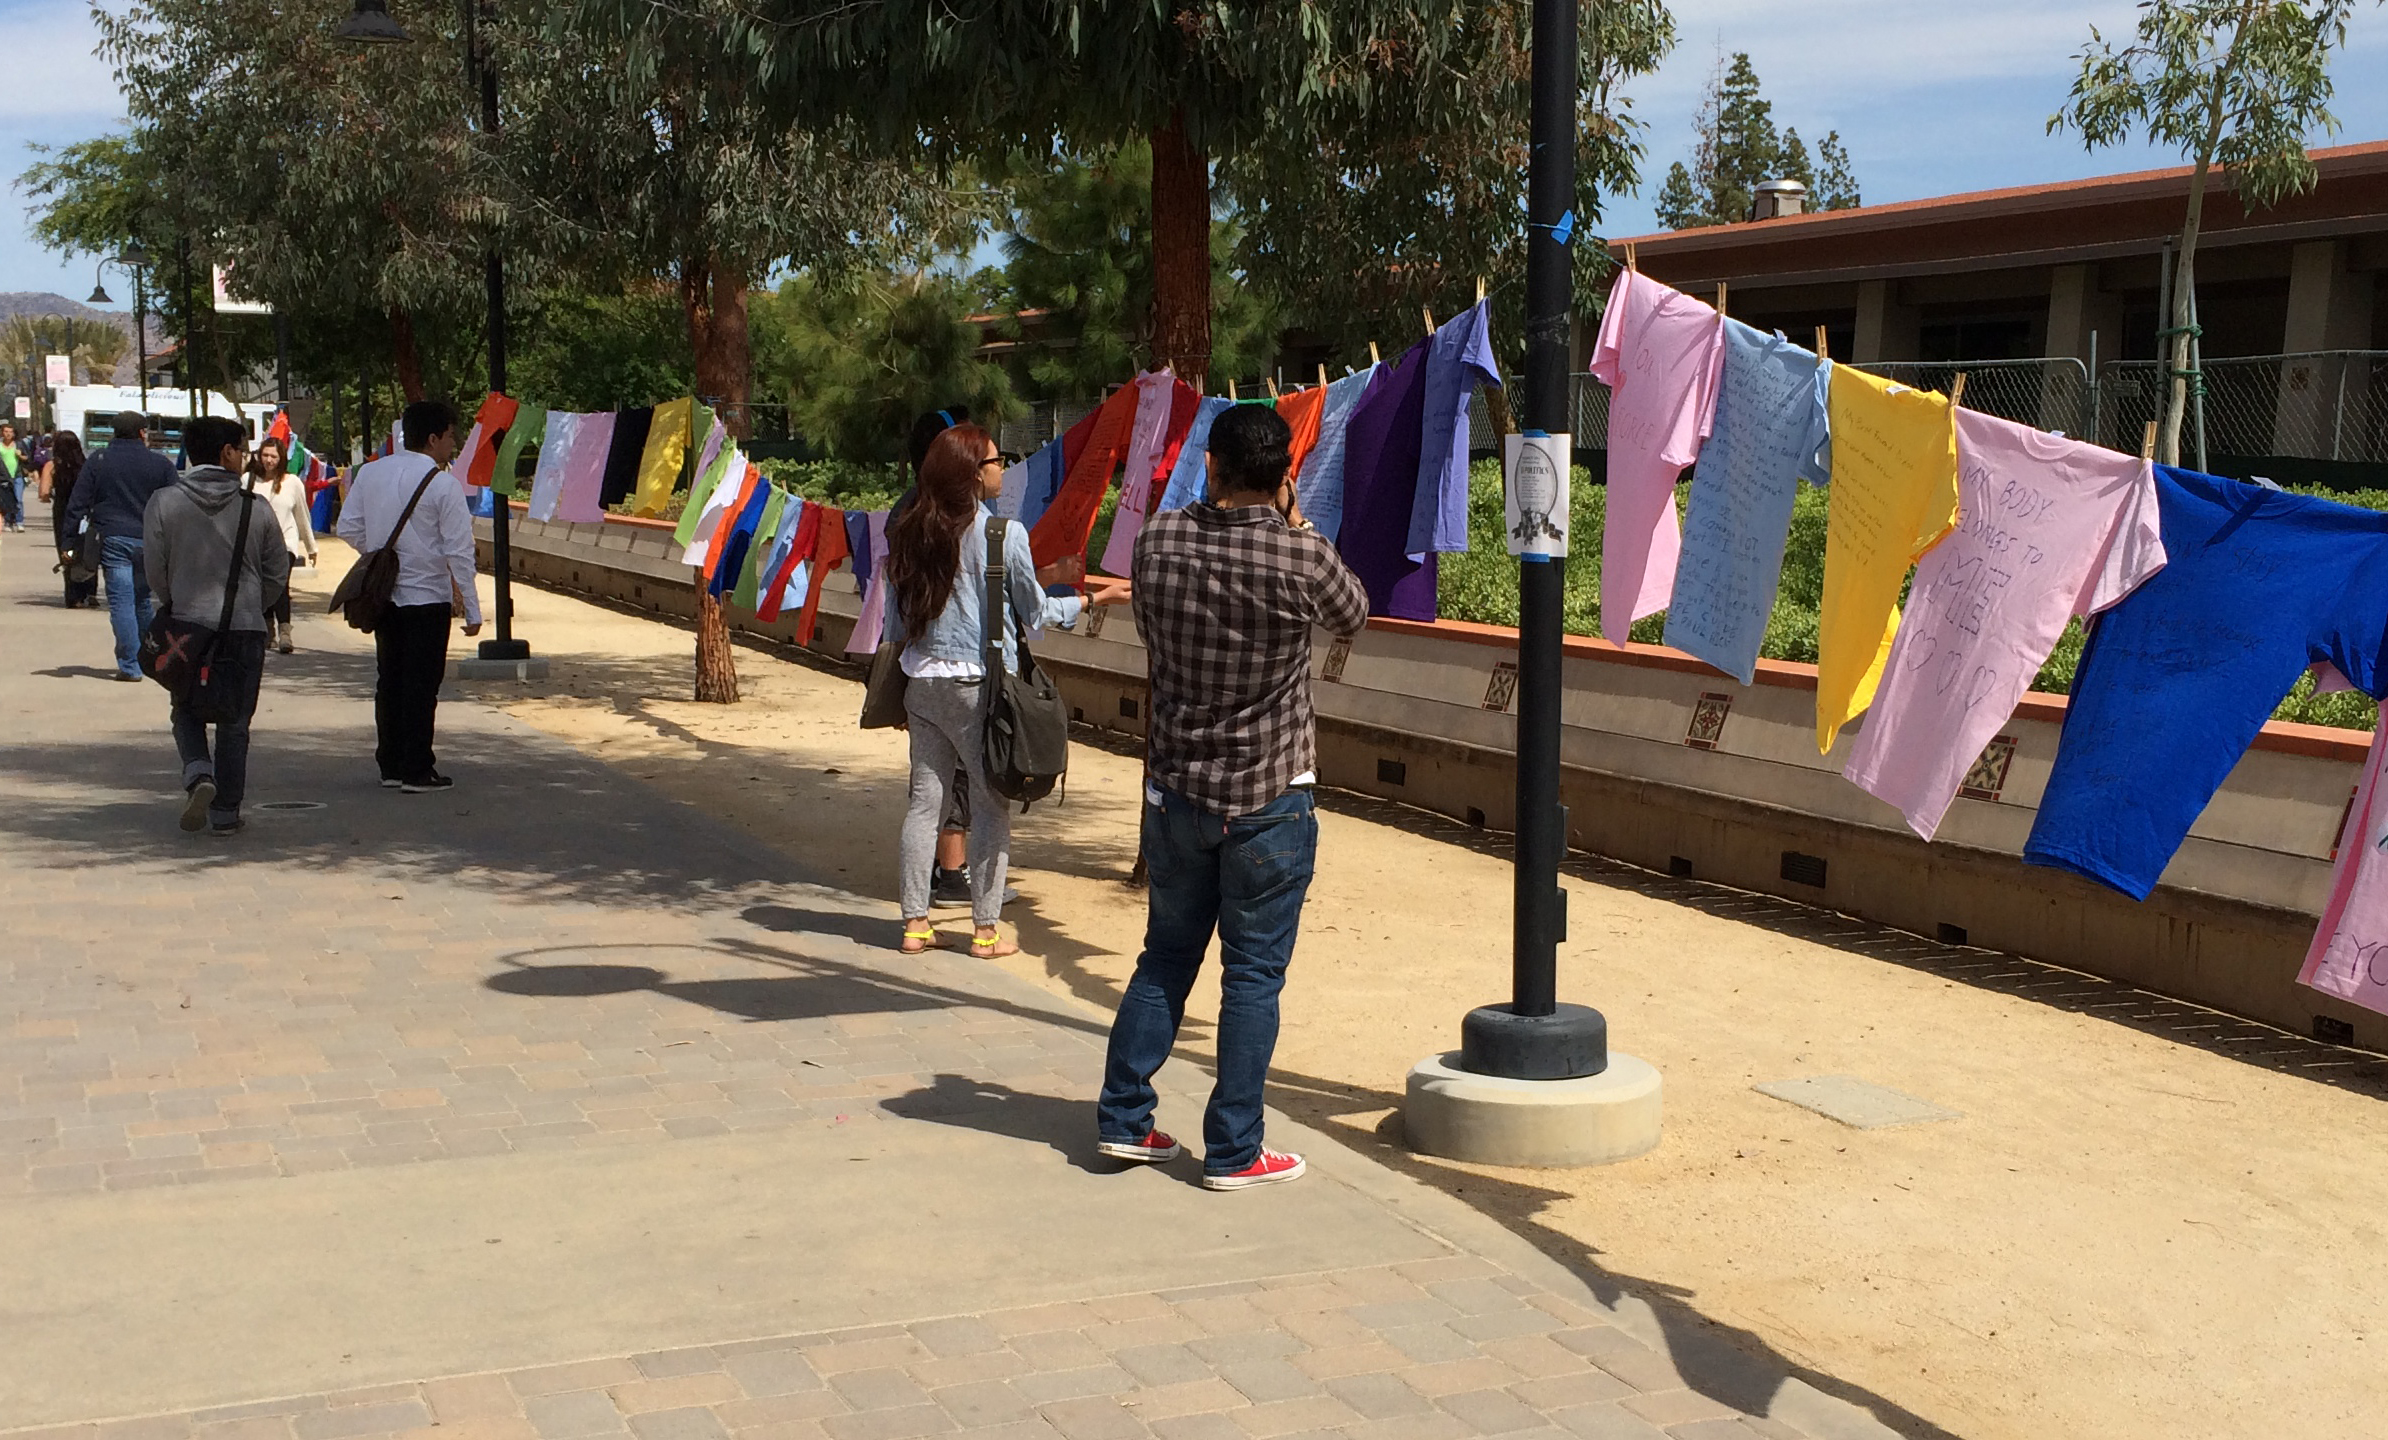 Campus Violence Response Team takes over mall with Clothesline Project